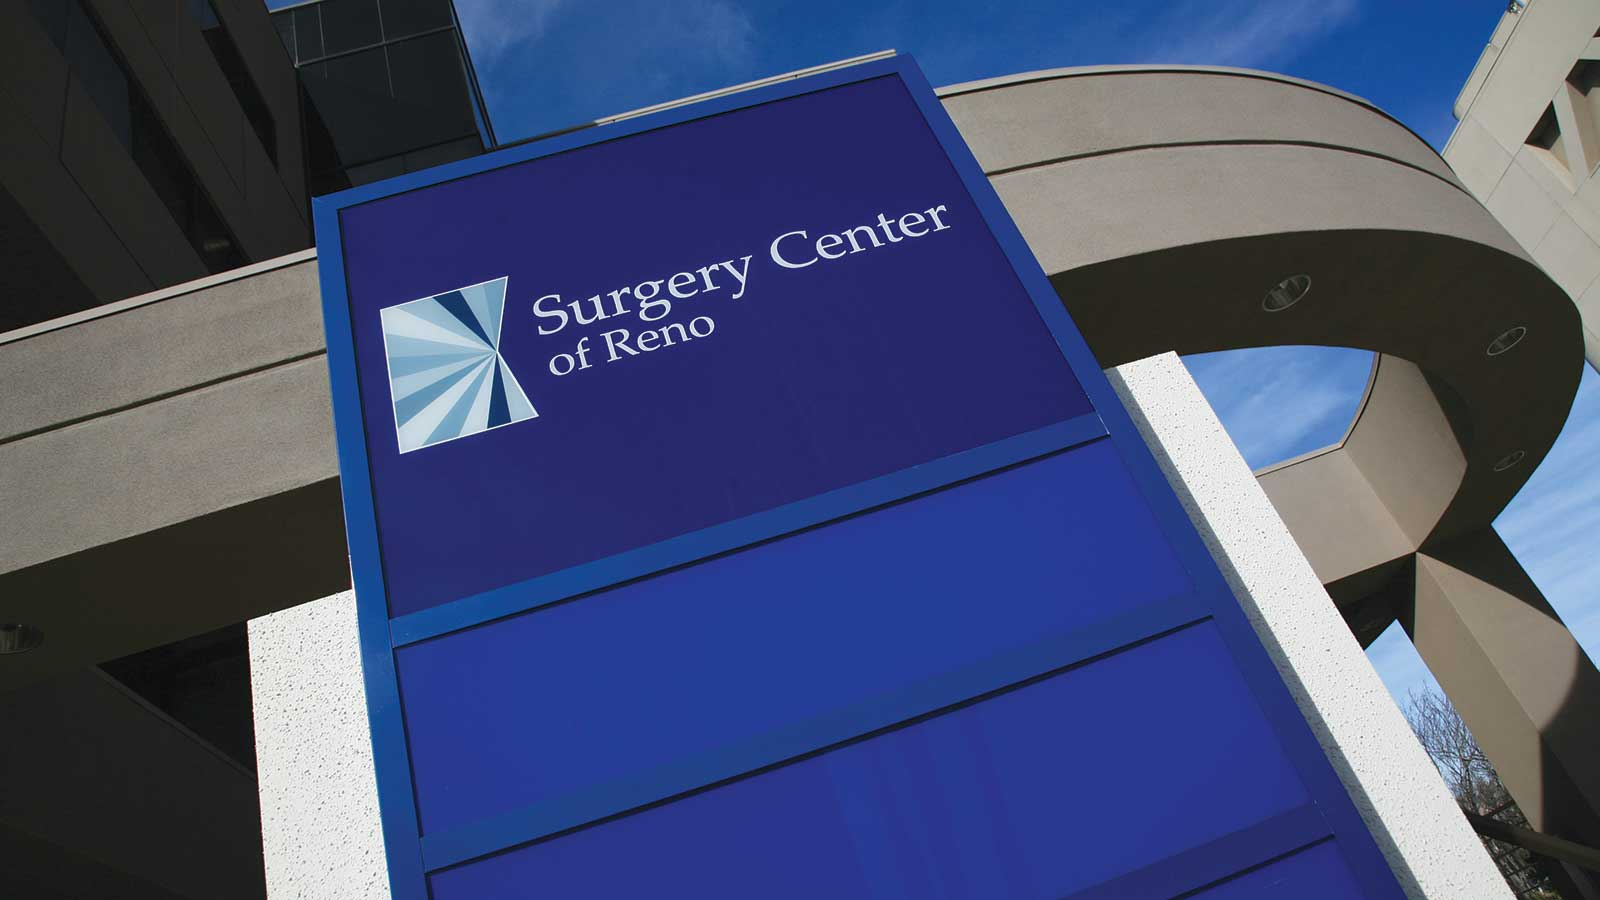 surgery center of reno